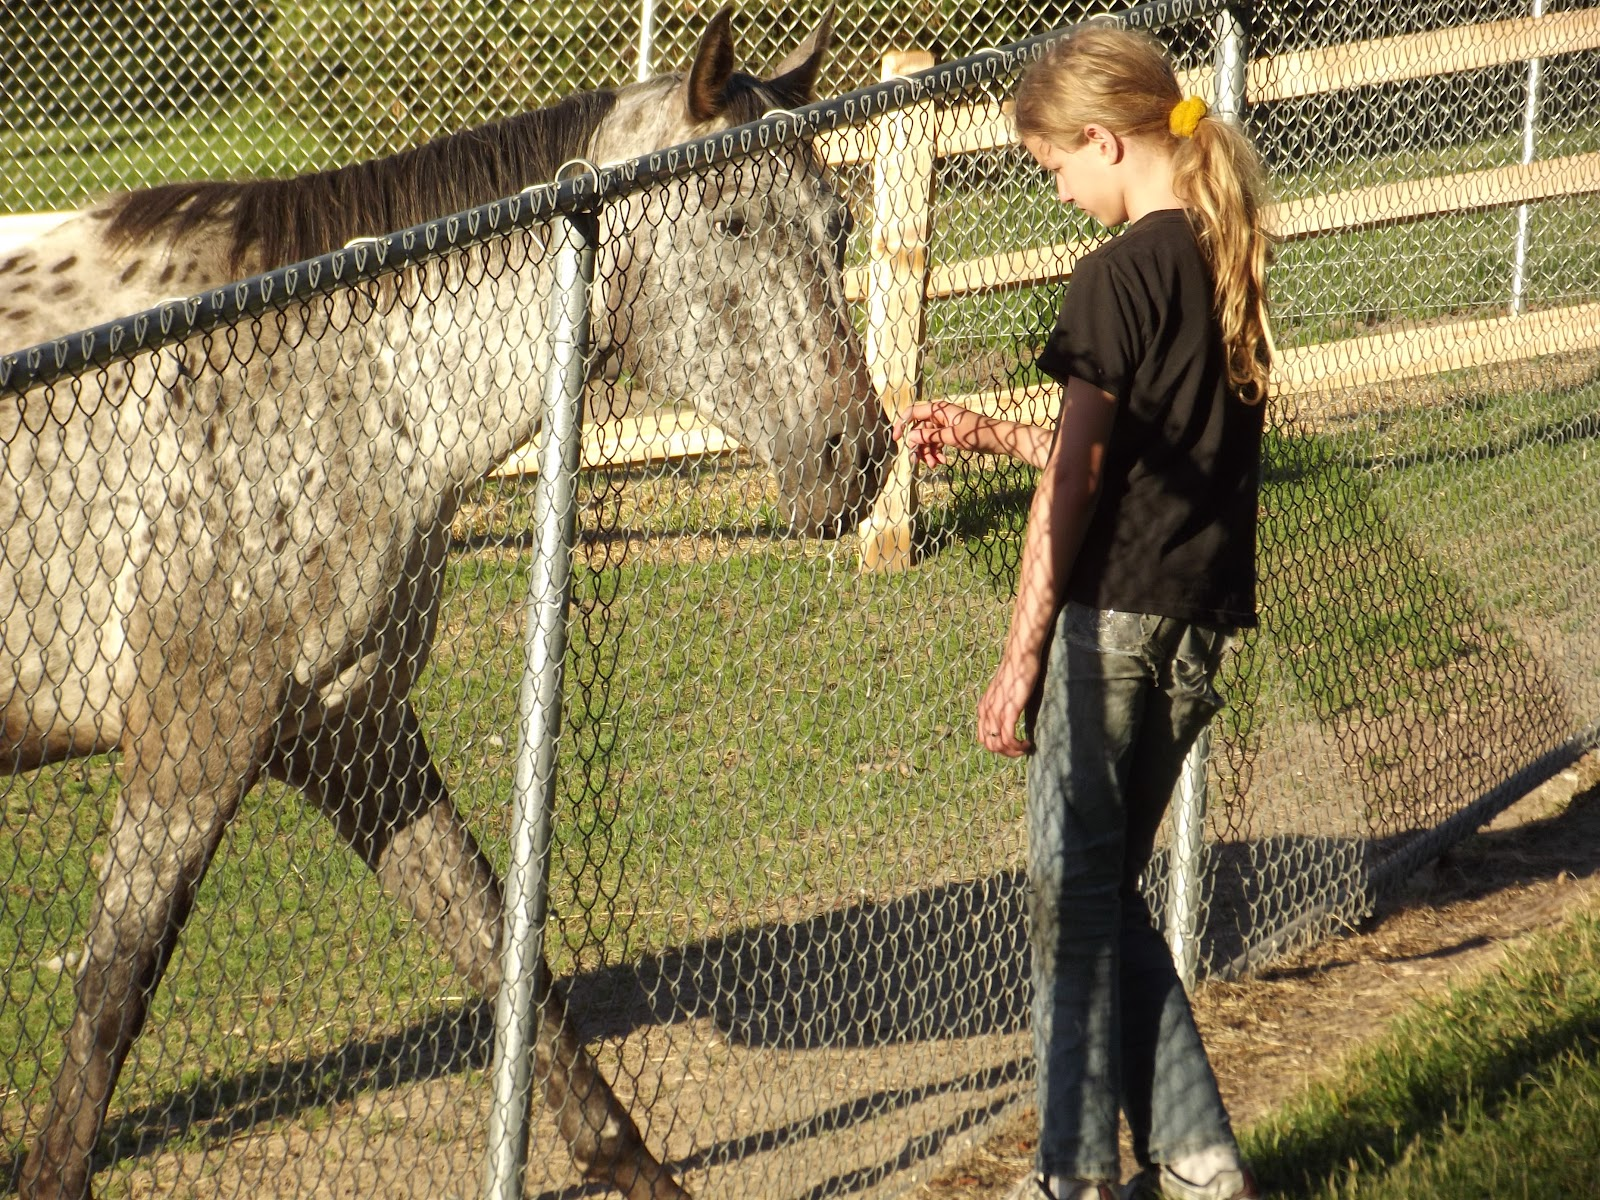 Boy petting horse through a fence